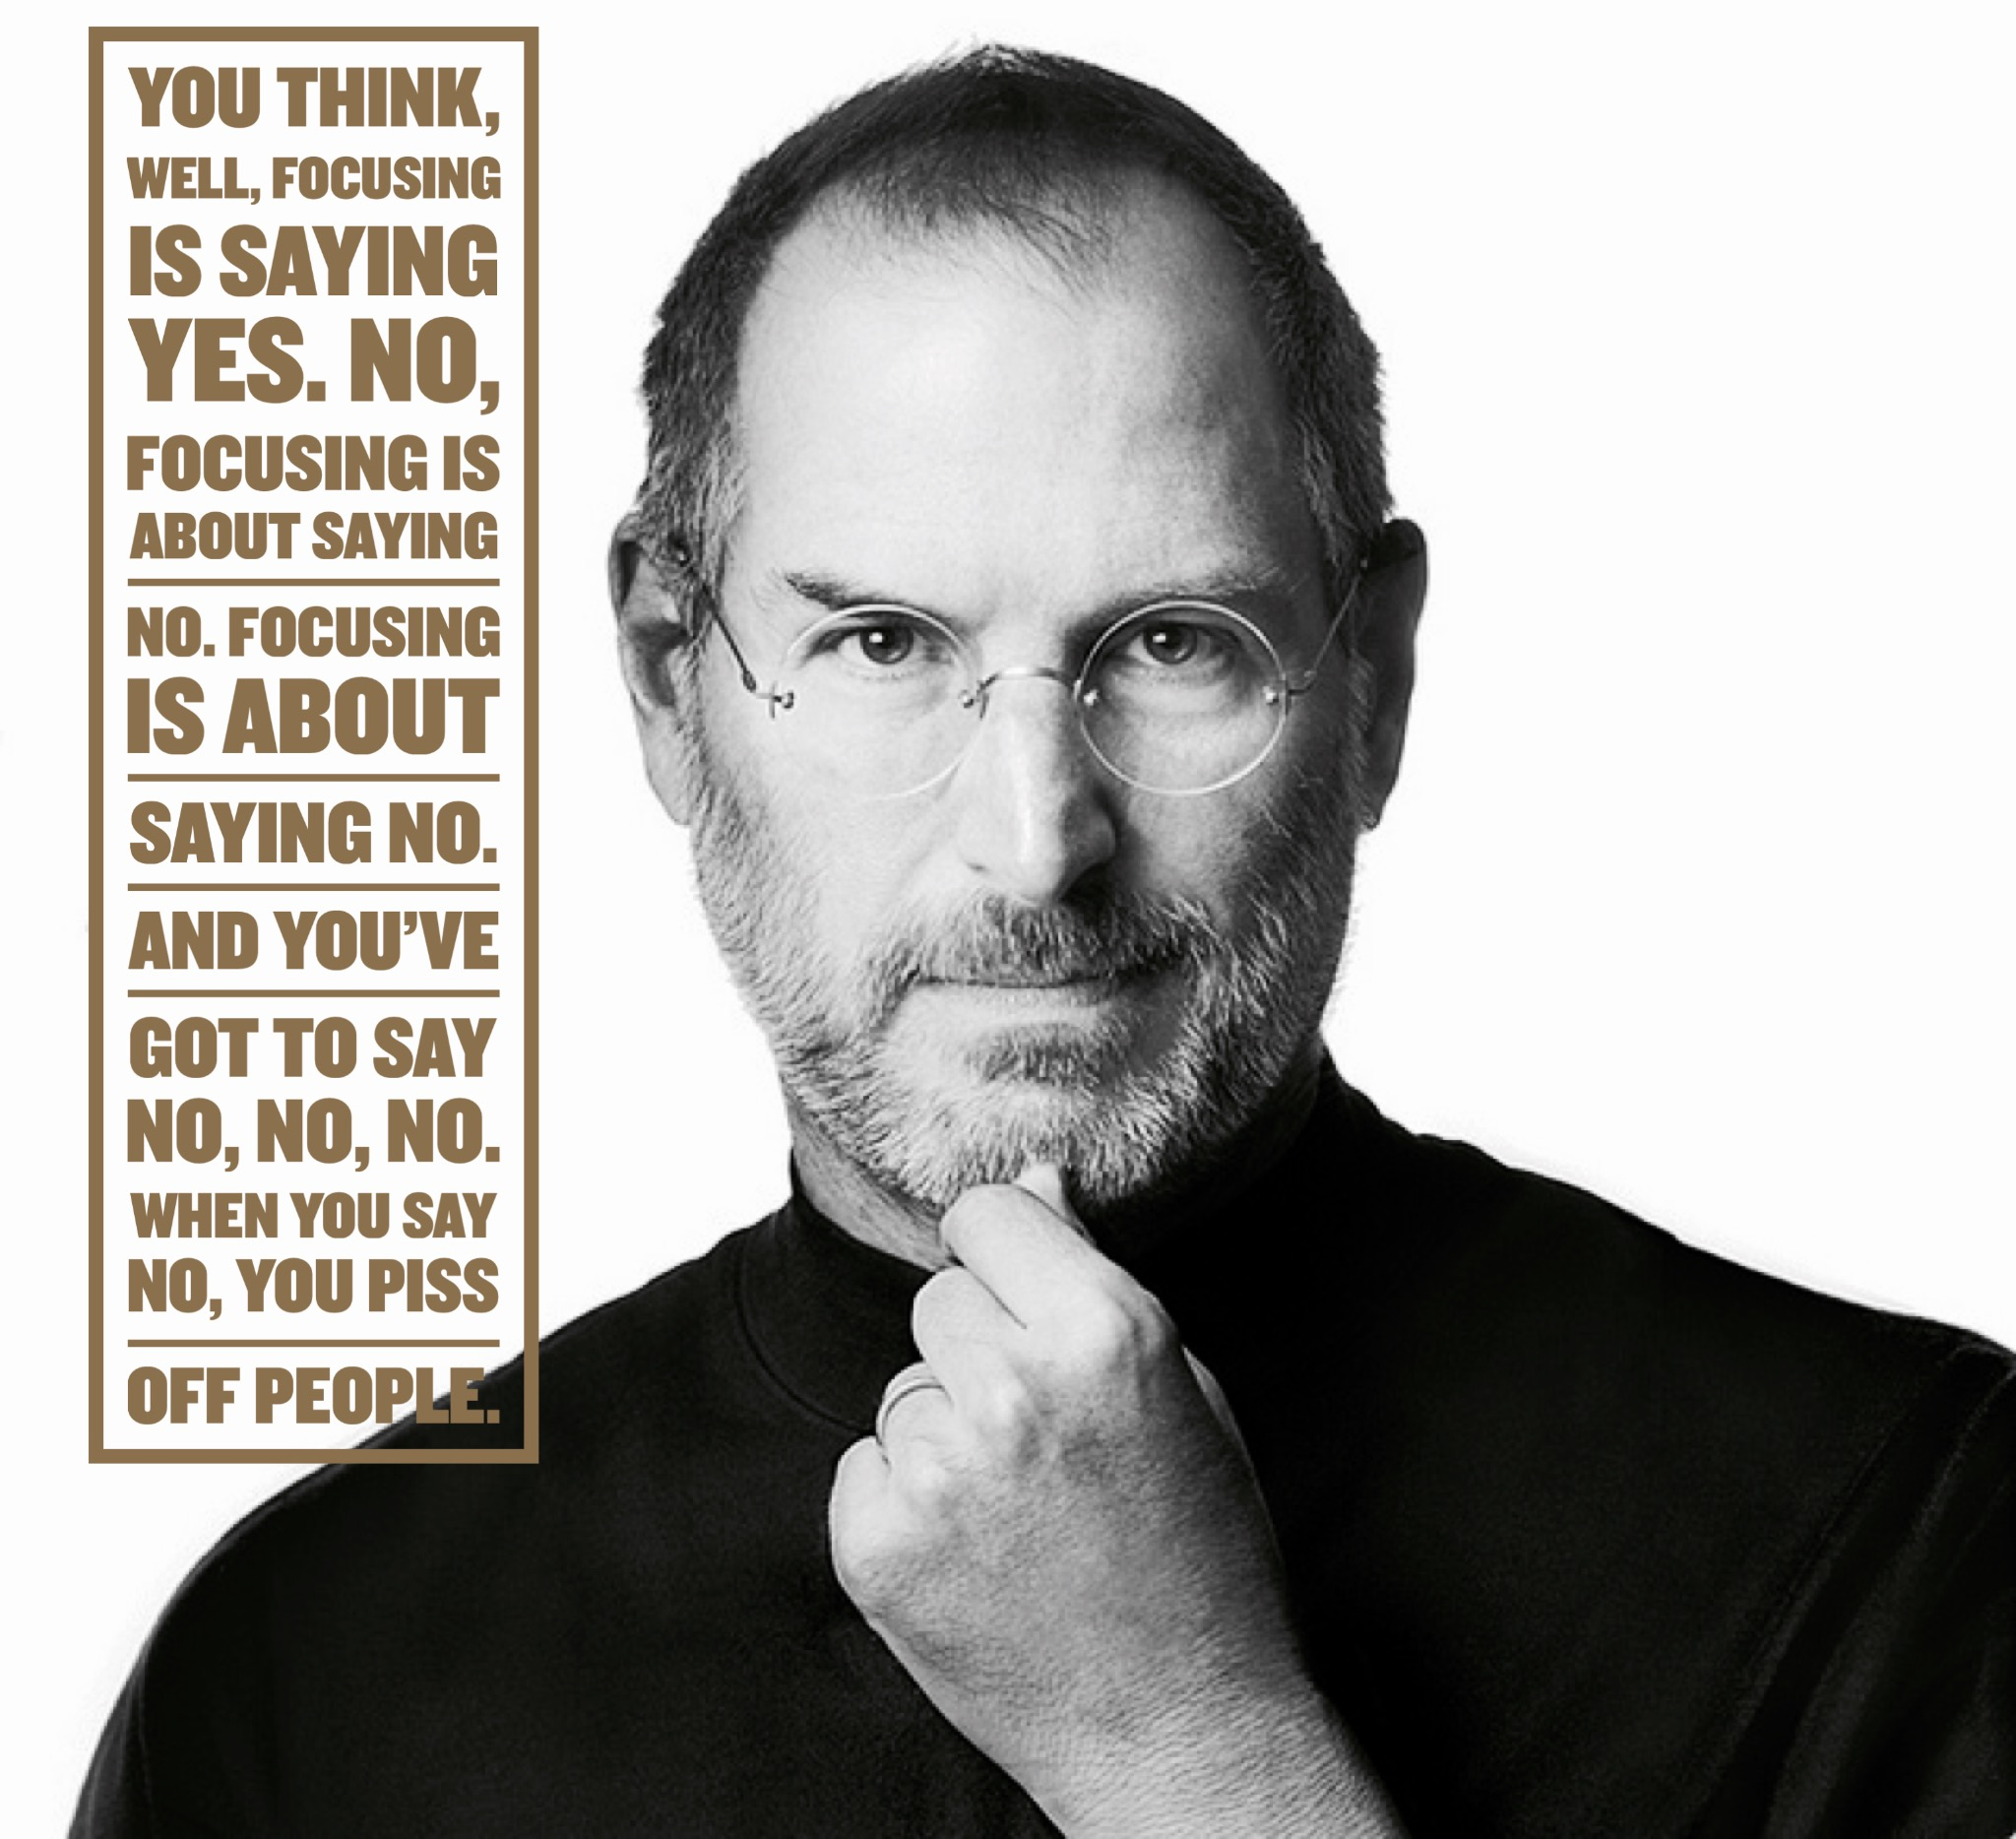 Steve Jobs Quotes On Life Brilliant The 20 Best Steve Jobs Quotes On Leadership Life And Innovation